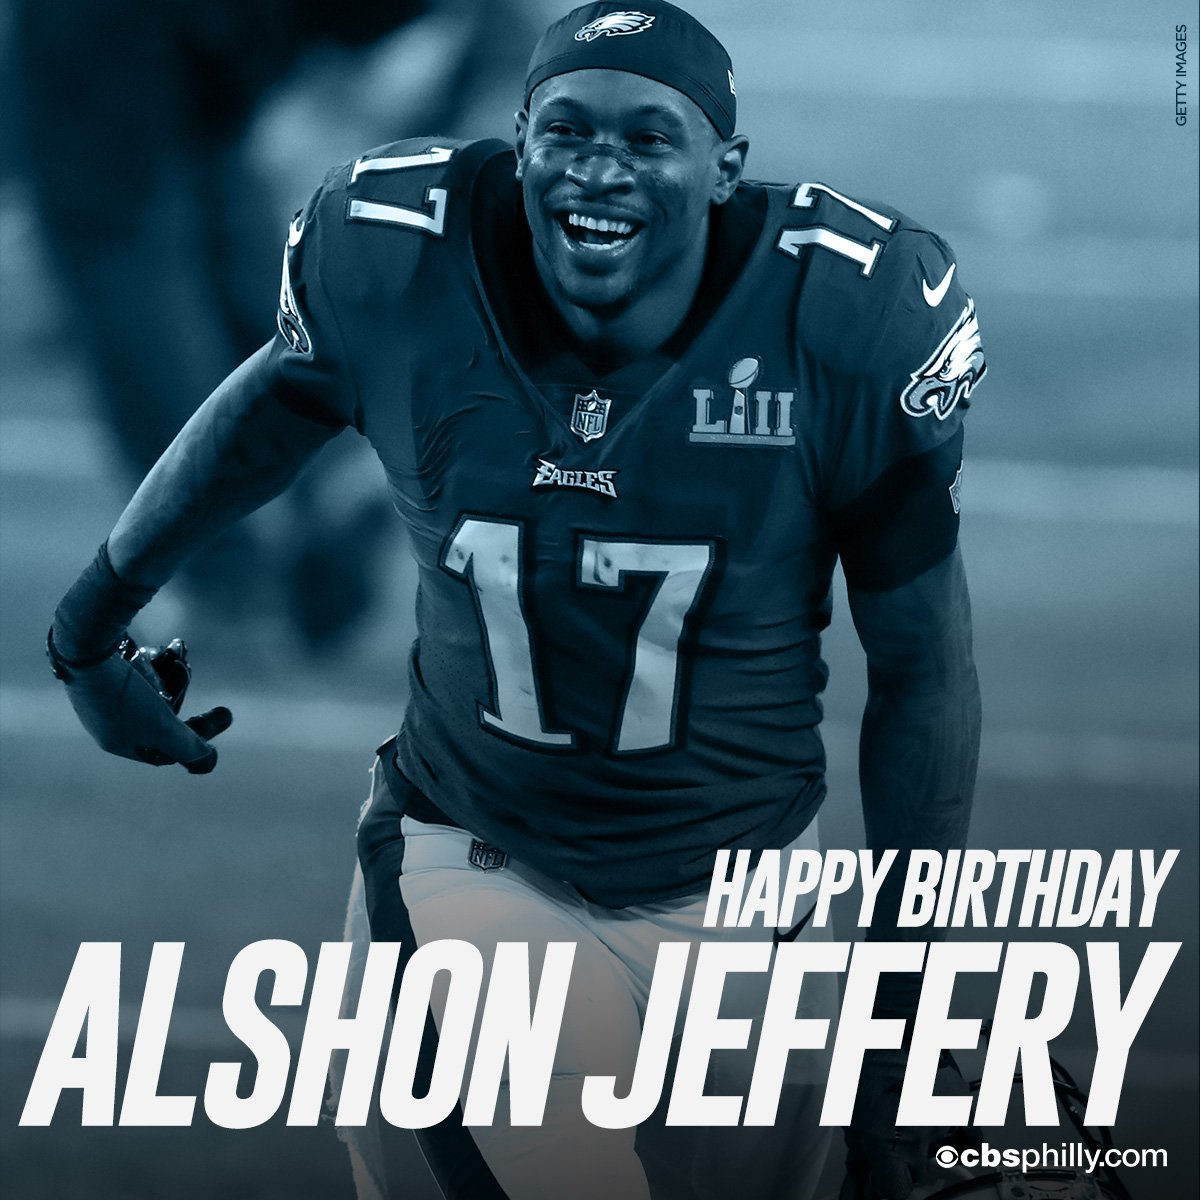 HAPPY BIRTHDAY Alshon Jeffery (